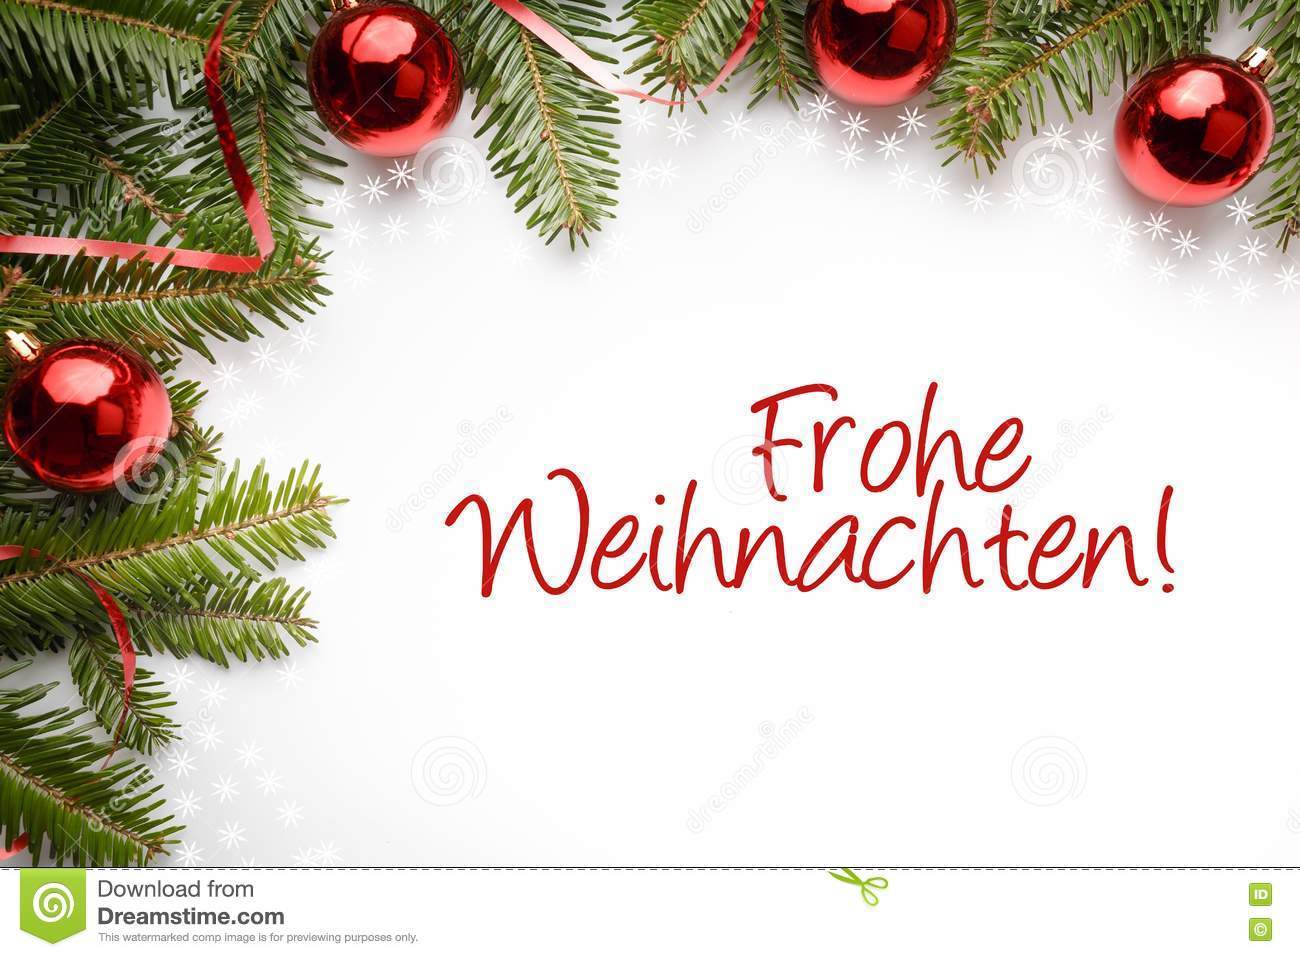 Christmas Decorations With The Christmas Greeting In German `Frohe ...